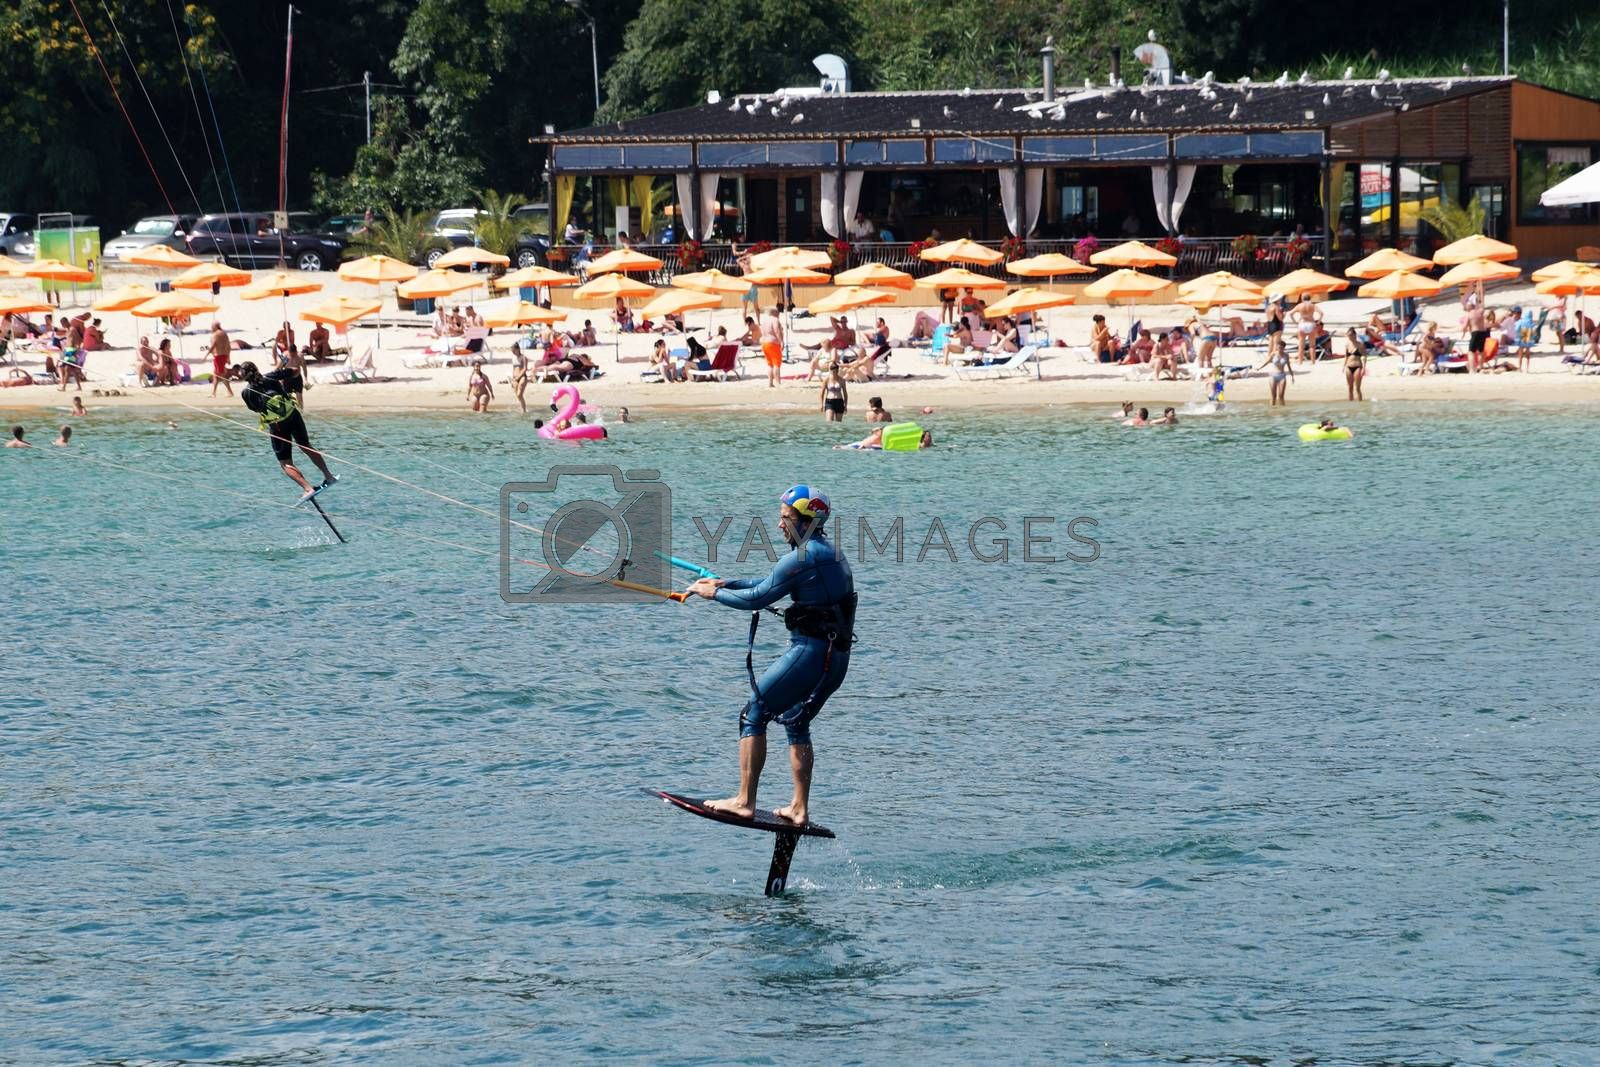 Varna, Bulgaria - July, 19, 2020: a man is kiting the sea against the background of the beachVarna